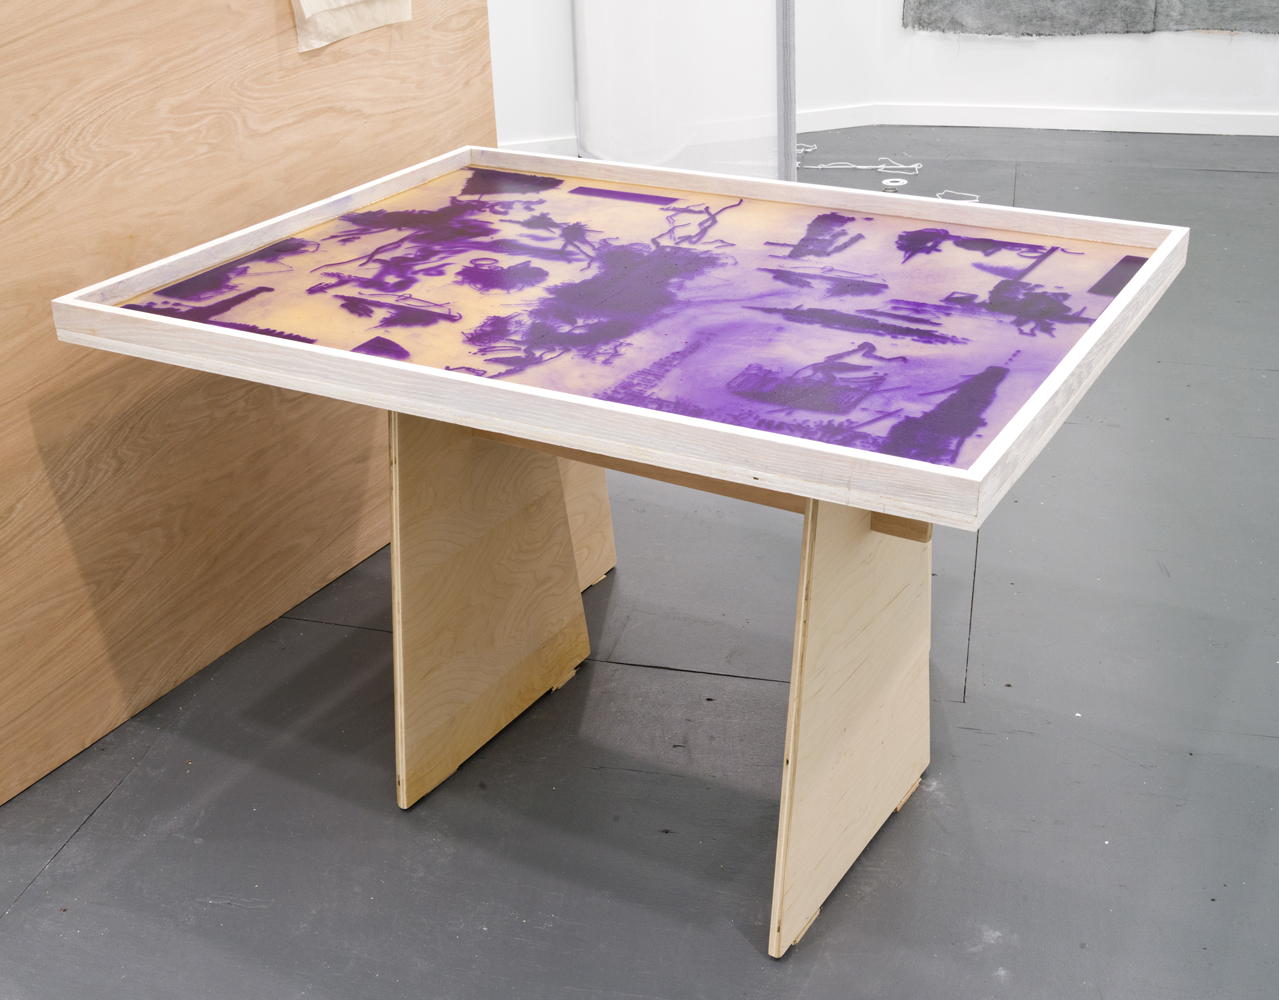 Valerie Snobeck / Catherine Sullivan,  Limited Good 5,  2013, wood, stain, hectograph duplication table, 31 x 38.5 x 50.5 inch